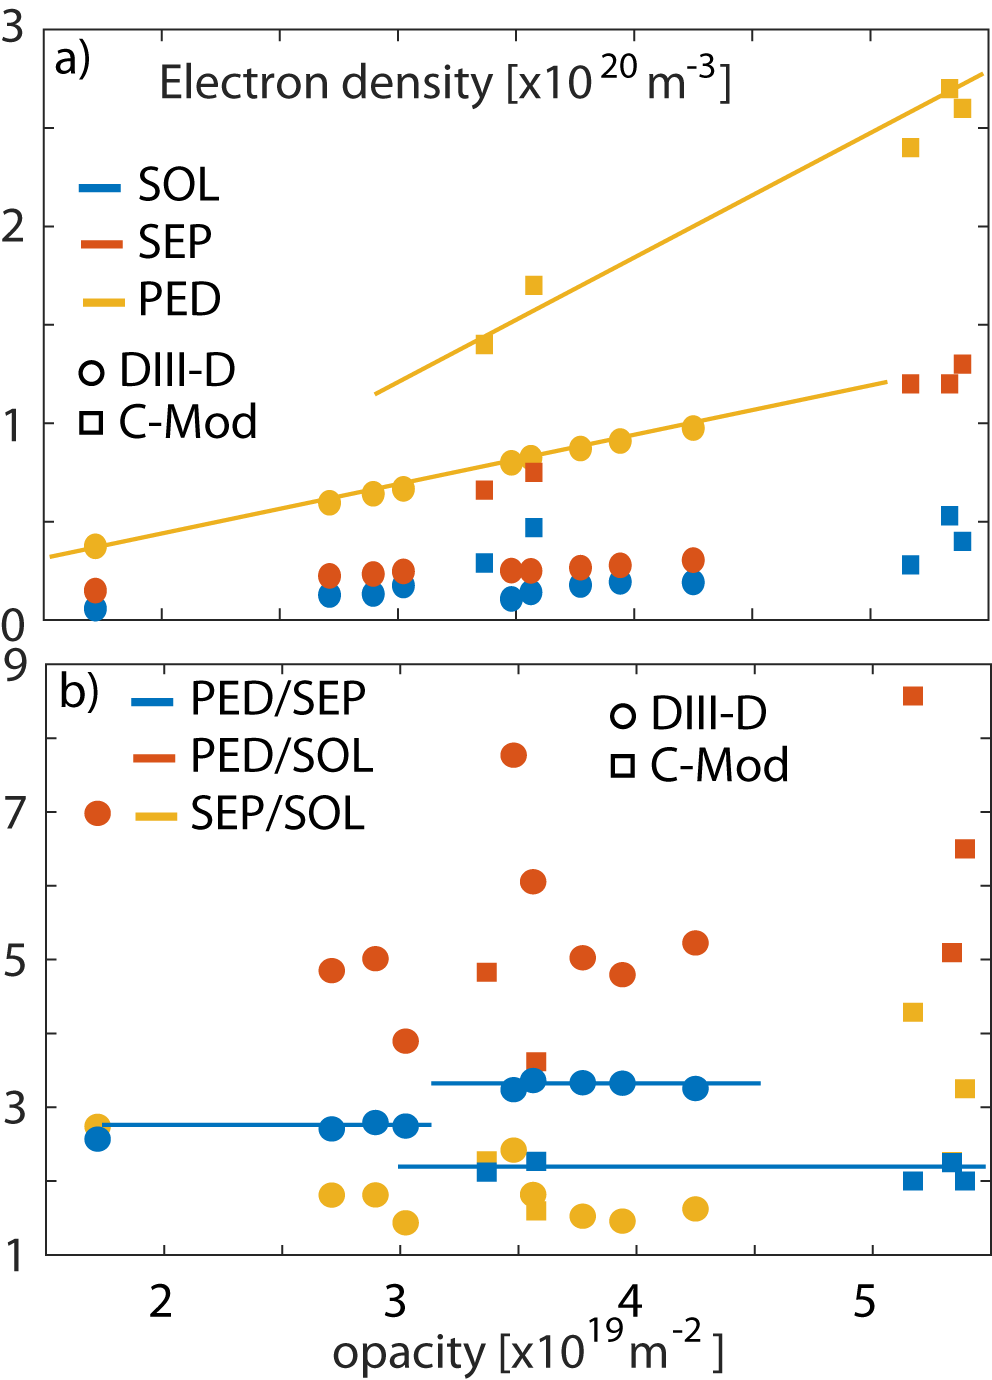 a) Change in electron density as a function of opacity on DIII-D (circle) and C-Mod (square) at top of the pedestal (yellow), separatrix (red), sol (blue). b) Change in density ratio as a function of opacity for neped/nesep (blue), neped/nesol (red) and nesep/nesol (yellow). The dashed lines help guide the eye.